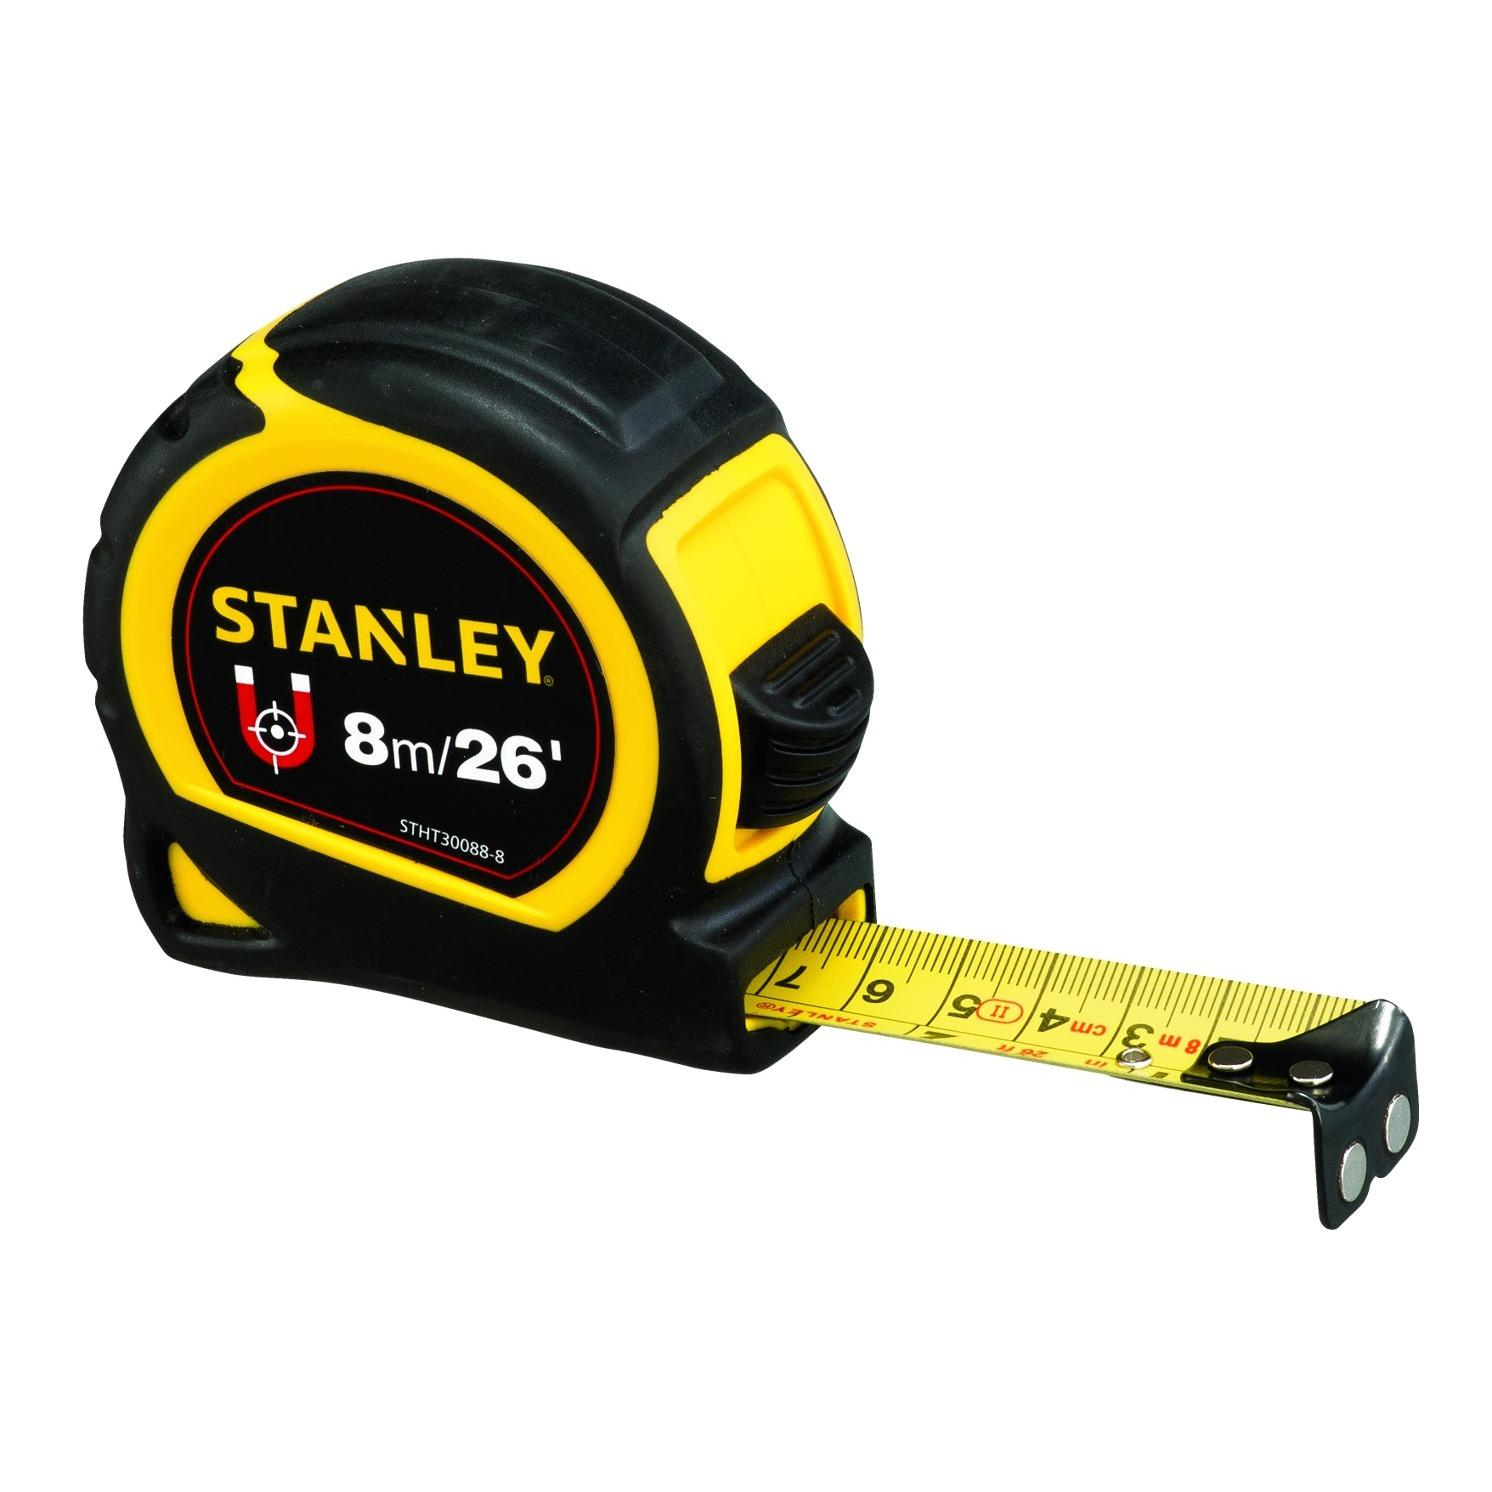 Compare Prices For Stanley Stht30088 8 Protape Magnetic 8M 26 25Mm Tape